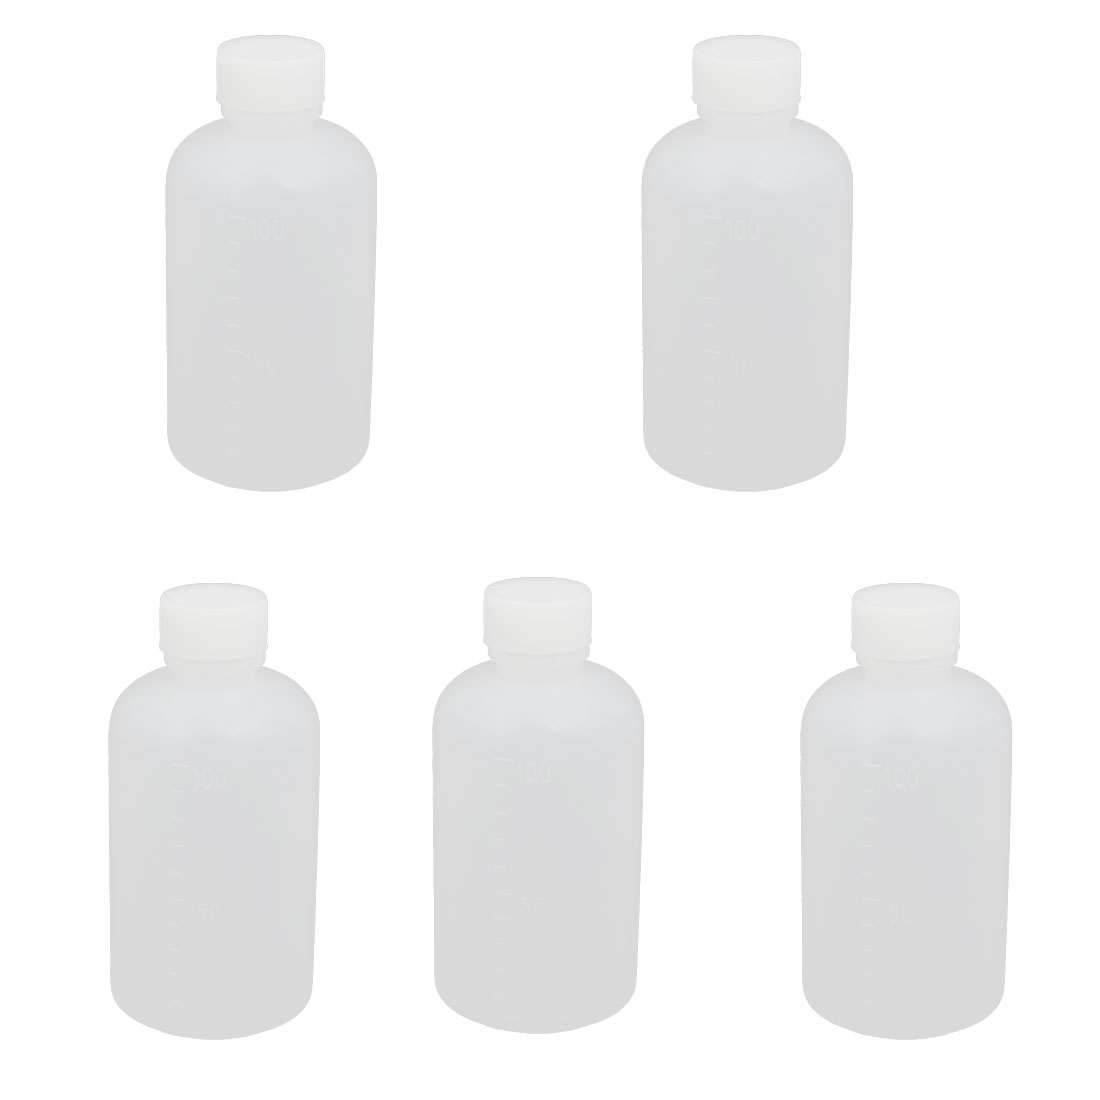 100ml 13mm Diameter PE Plastic Round Narrow Mouth Bottle Clear 5pcs